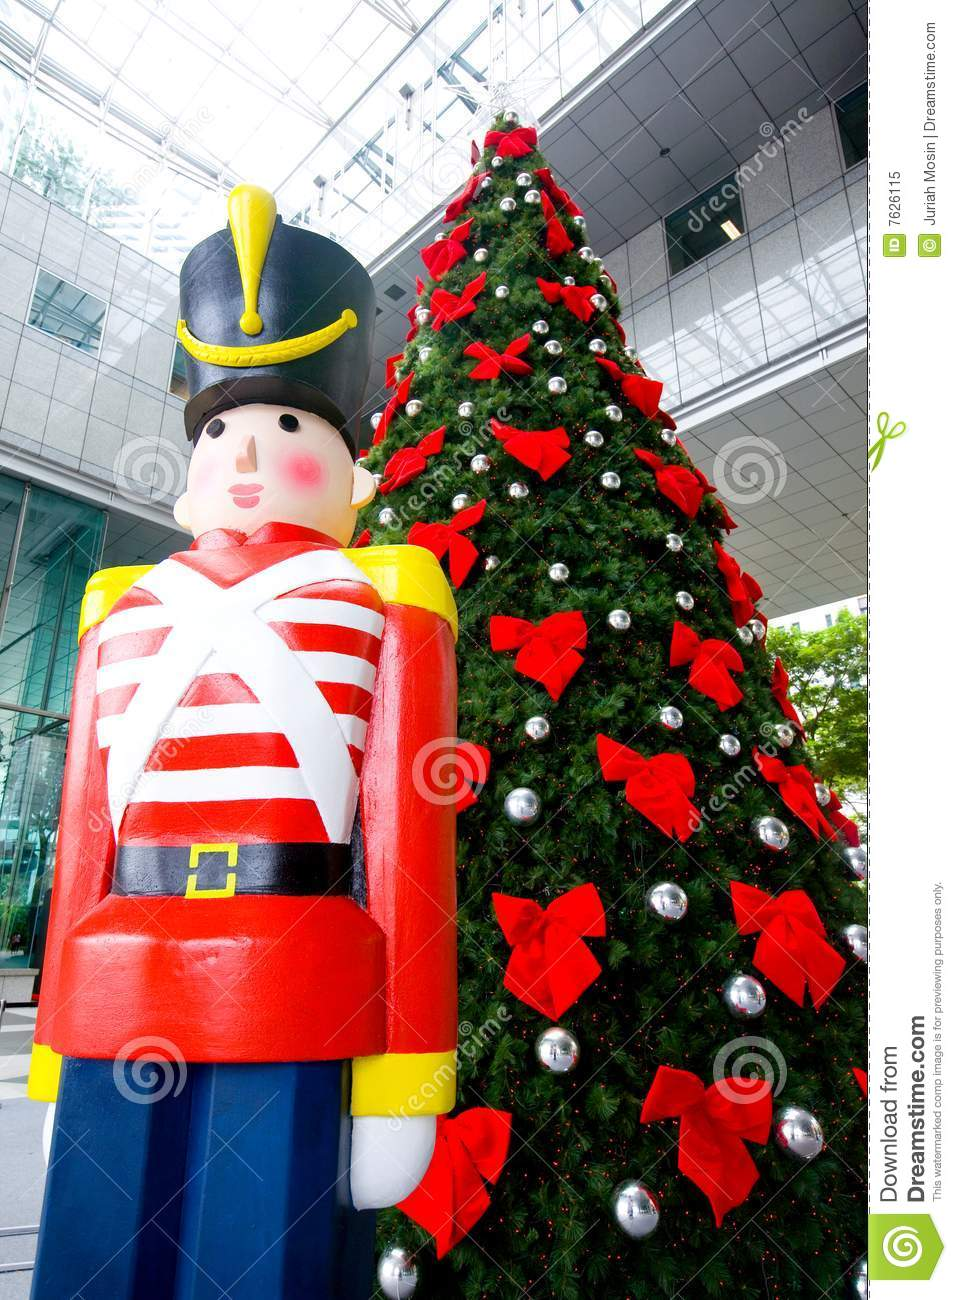 christmas tree and wooden soldier decoration - Christmas Decorations Wooden Soldiers